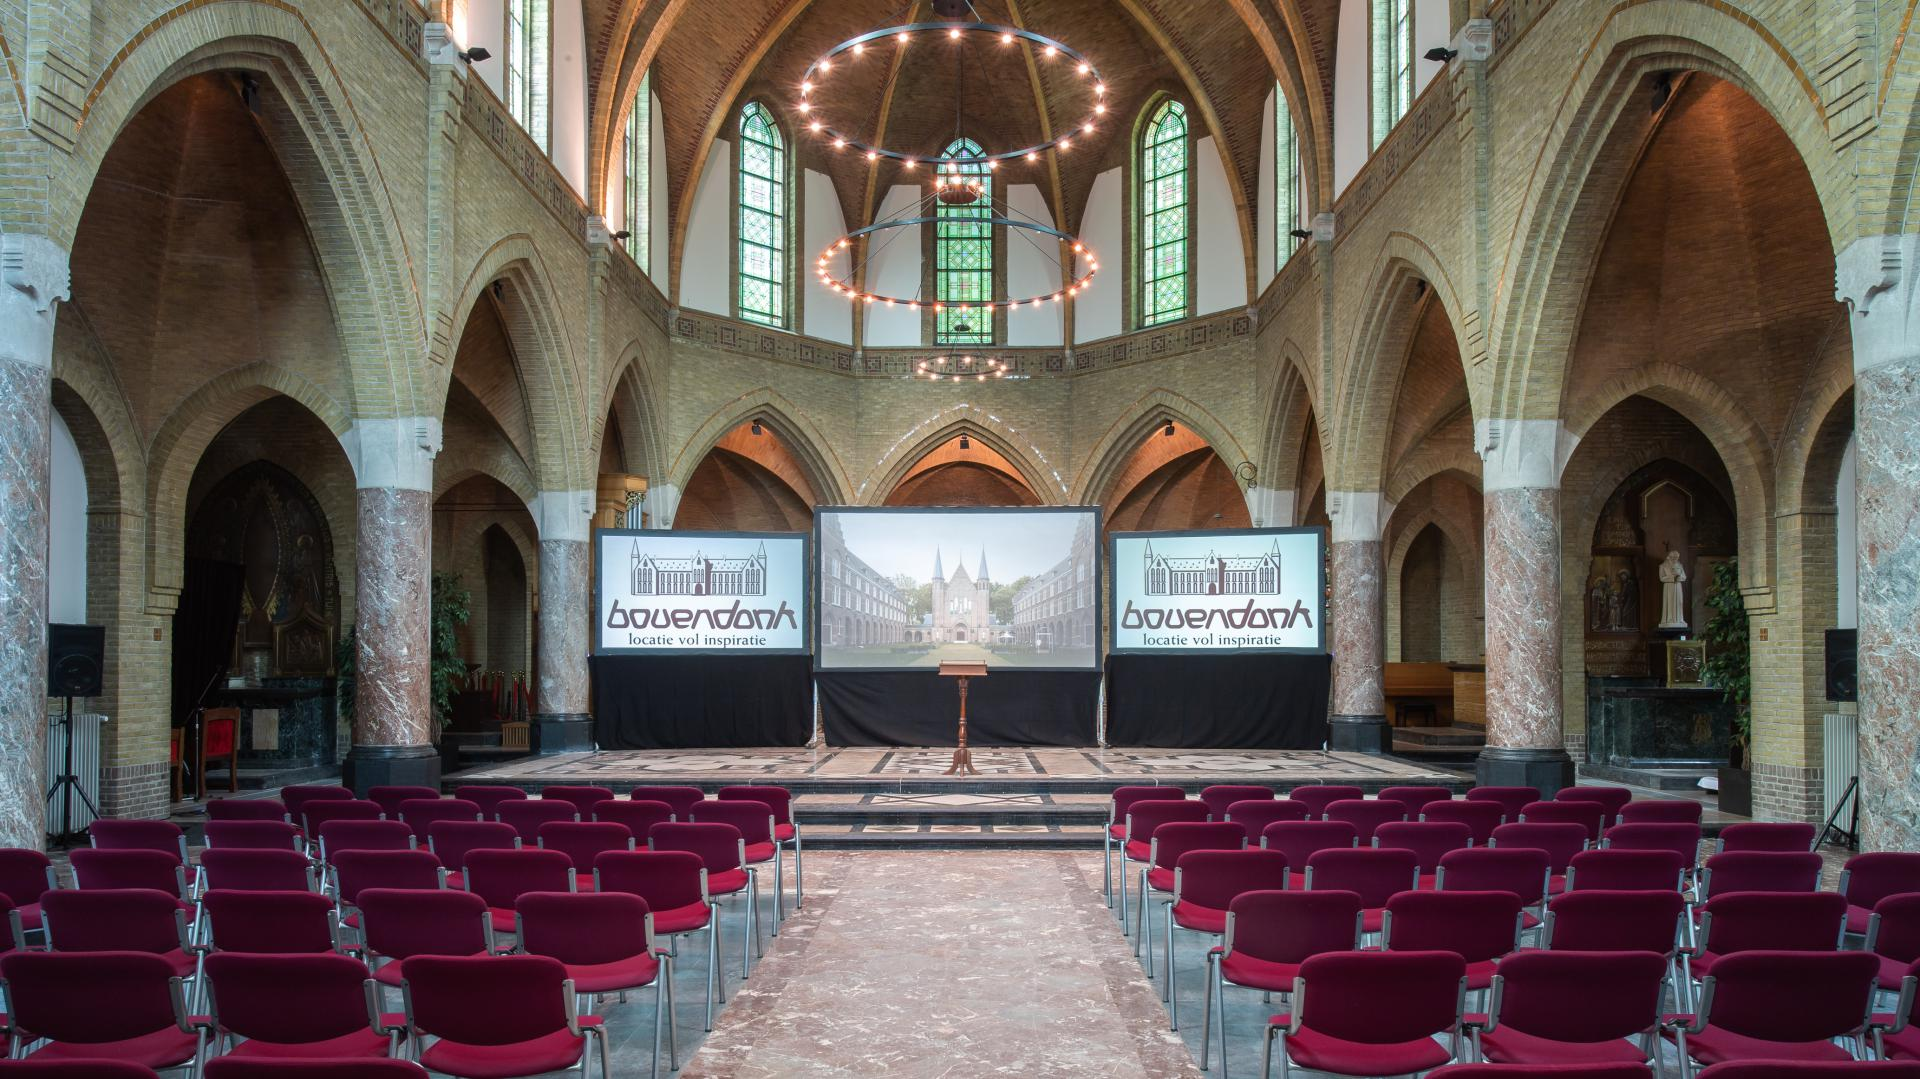 vergaderlocatie-congreslocatie